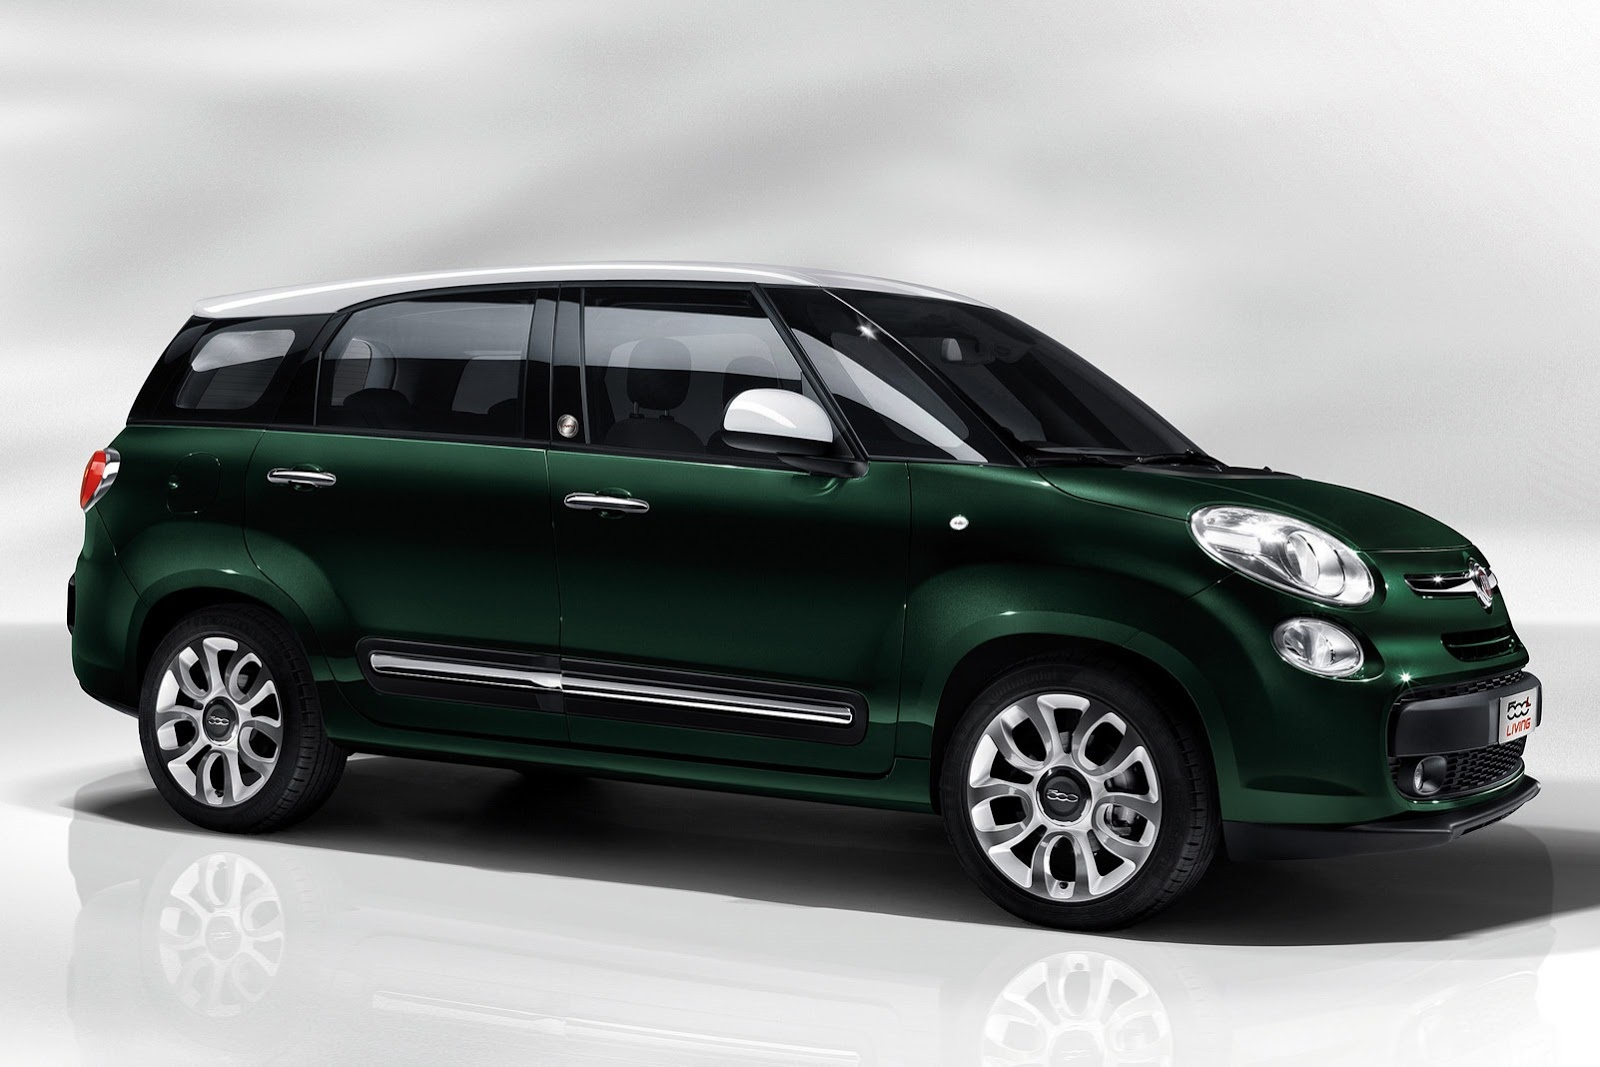 india bound fiat 39 s 7 seater mpv launched called 39 500l living 39. Black Bedroom Furniture Sets. Home Design Ideas